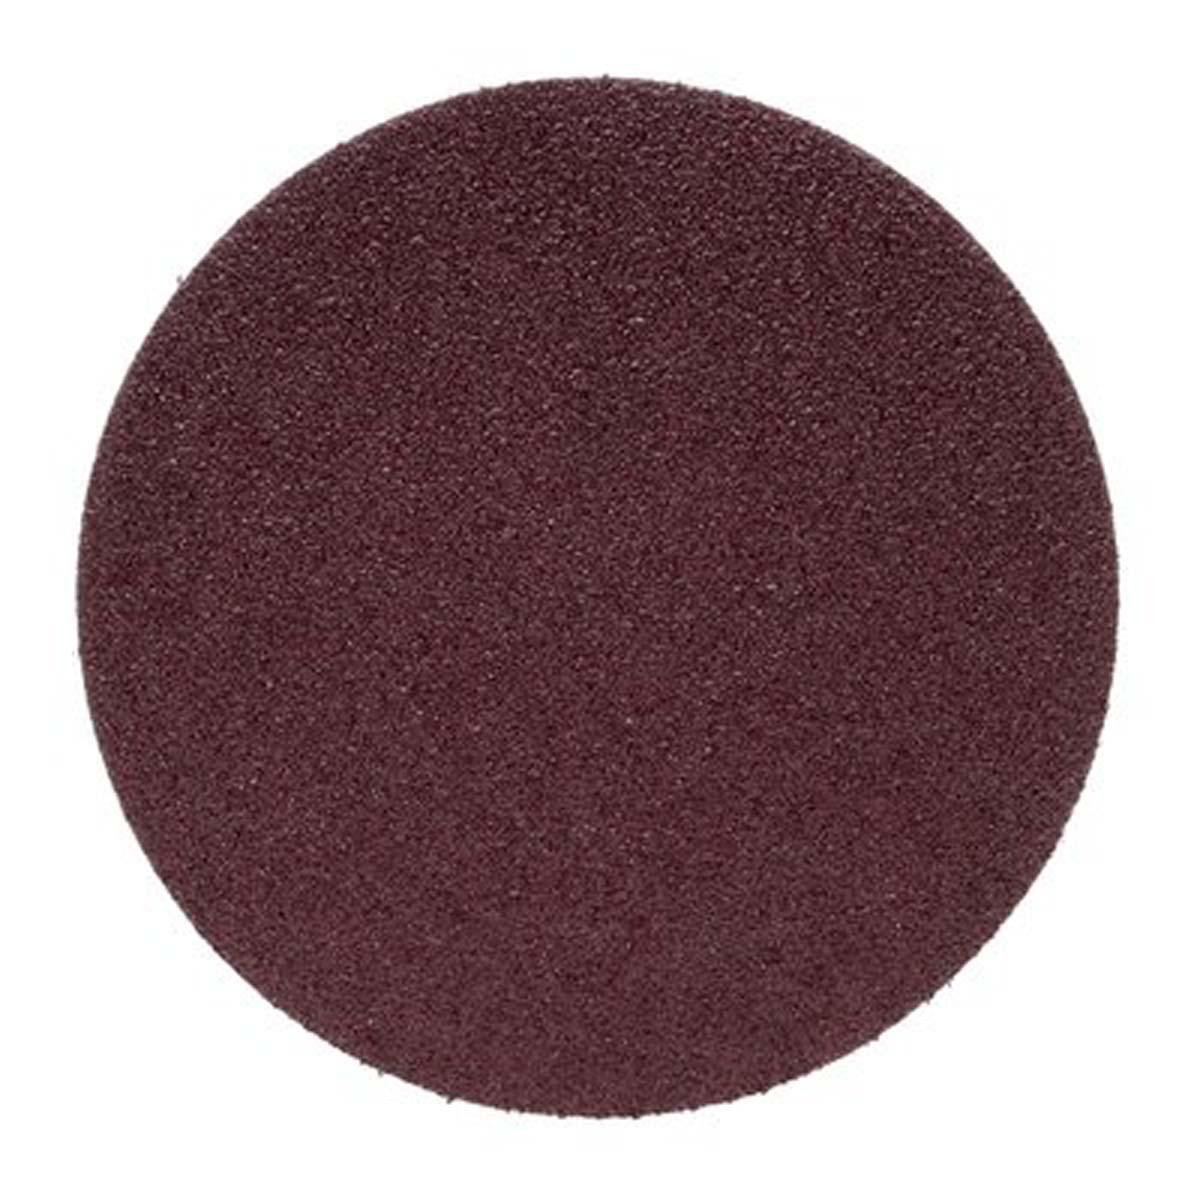 3M PSA Cloth Disc 348D  8 in x NH 36 X-weight